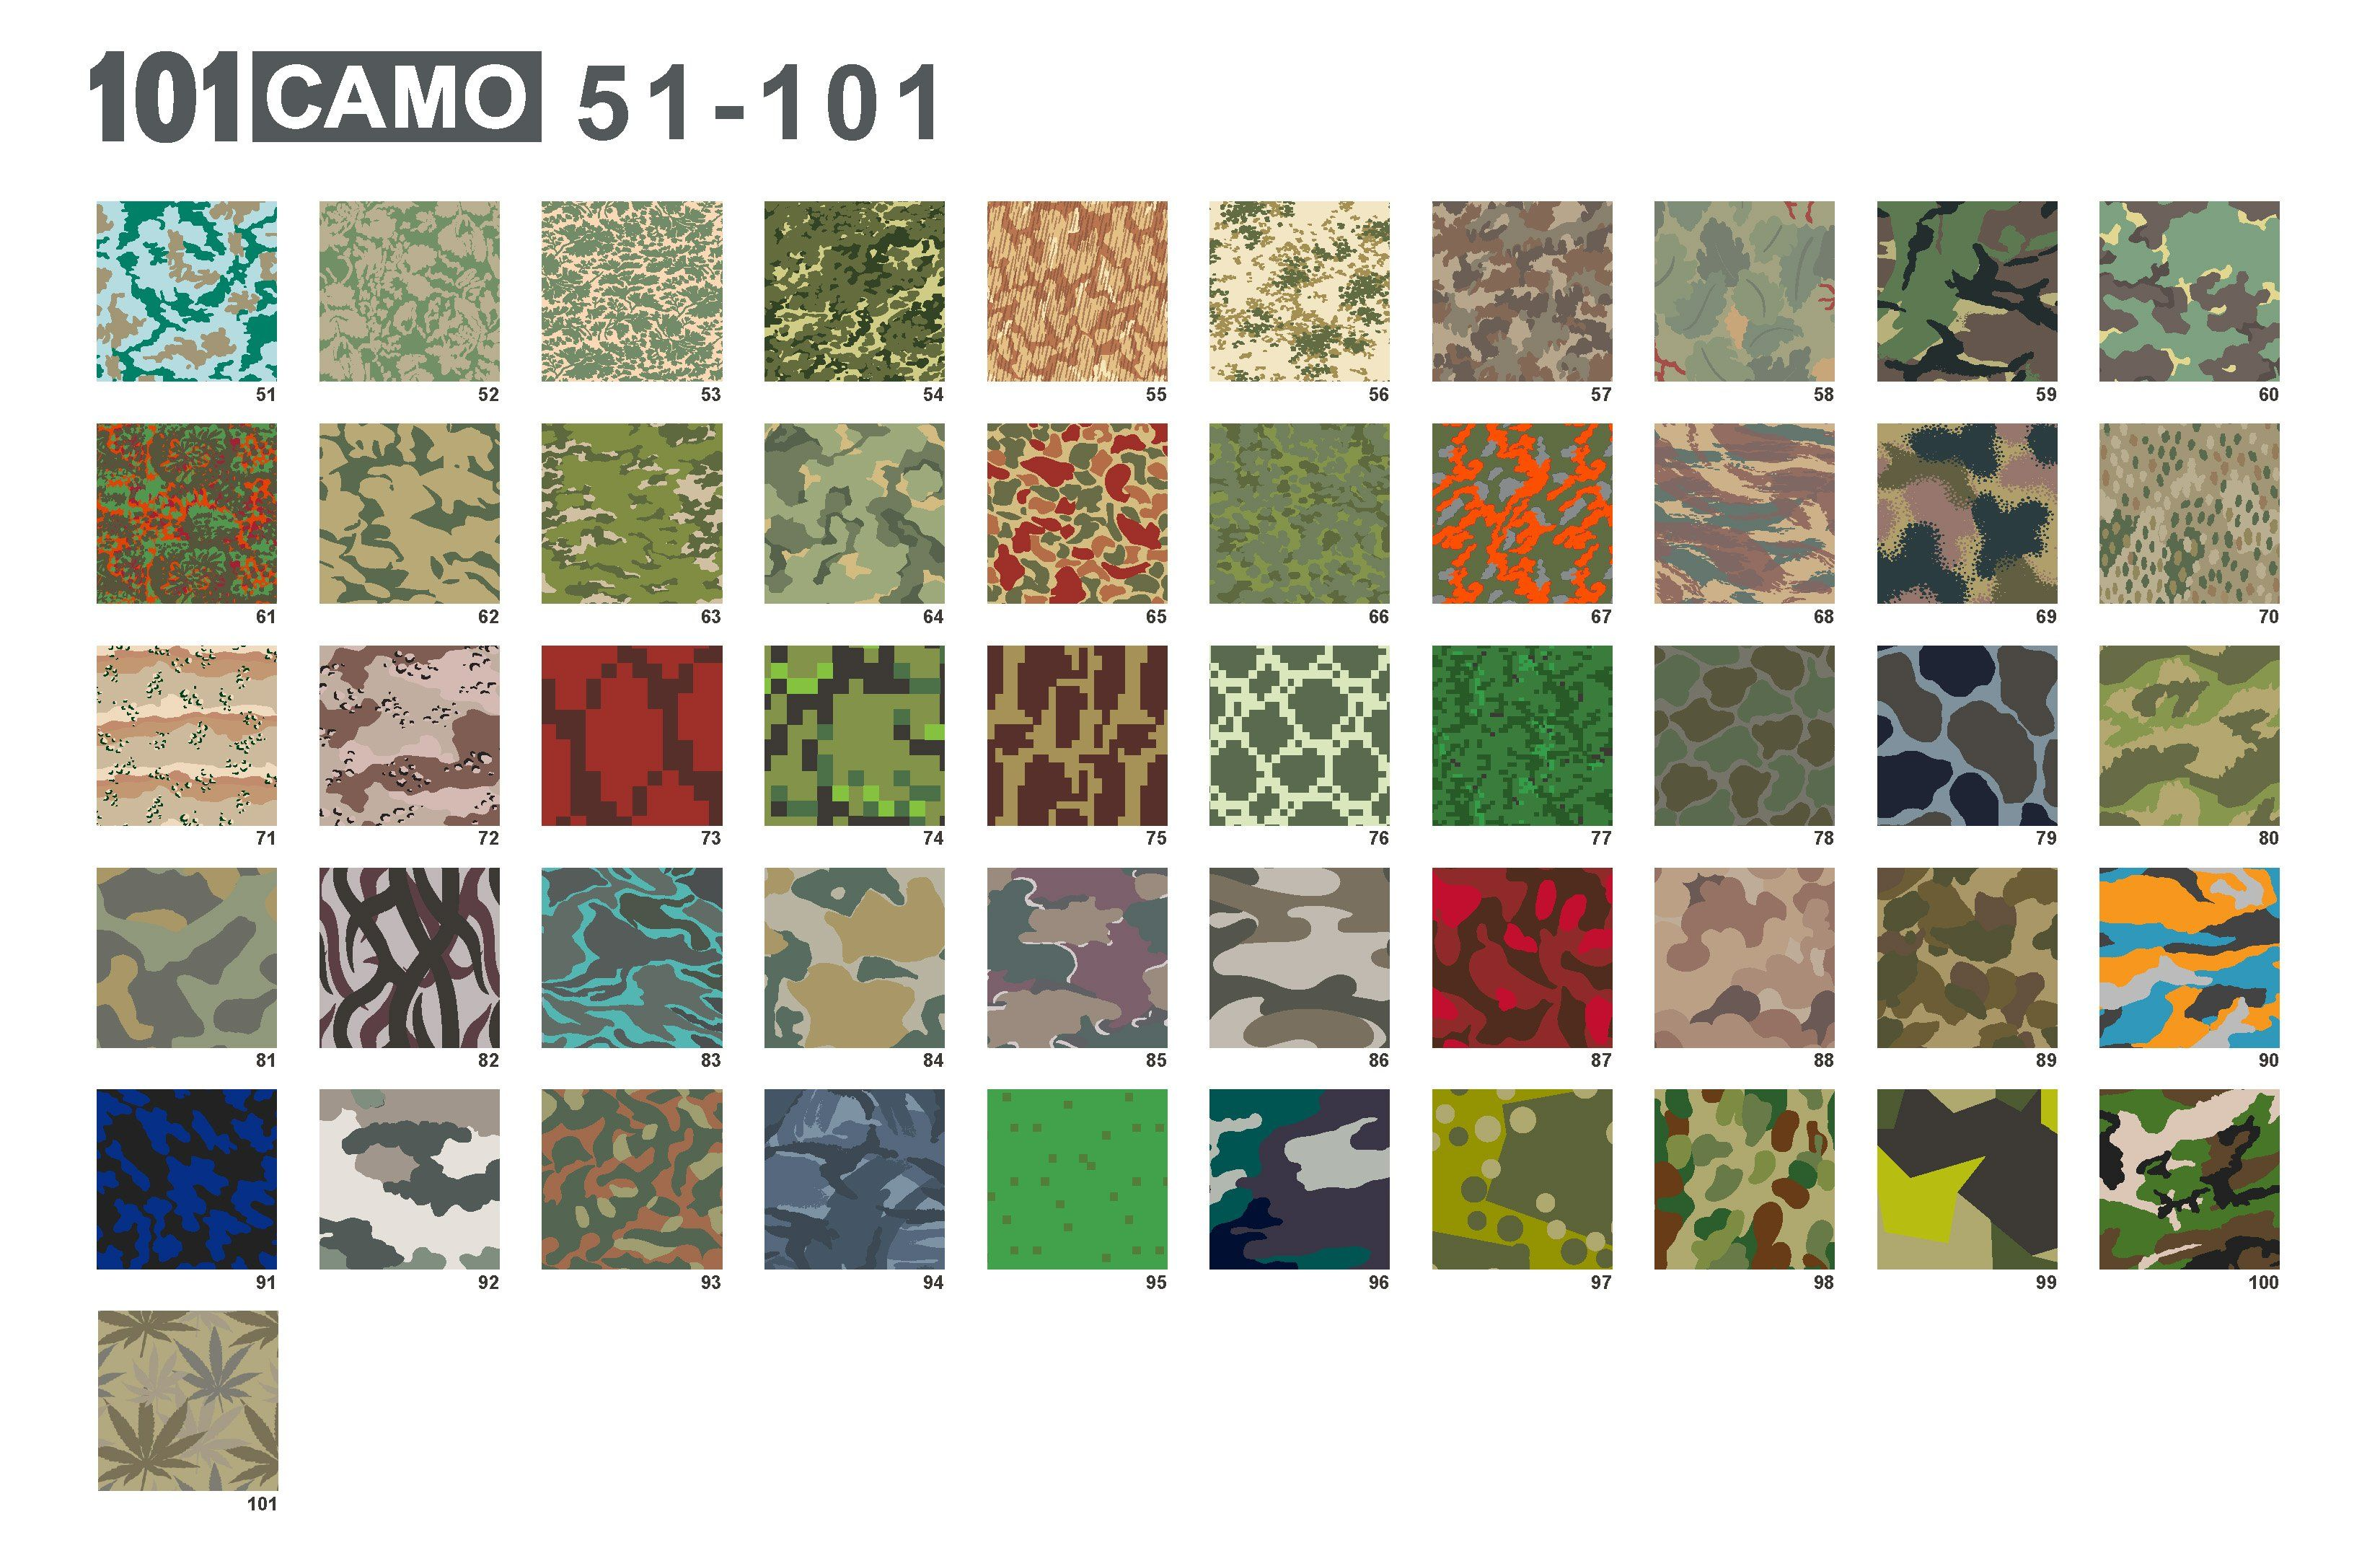 101 Camo Patterns With Images Camo Patterns Camouflage